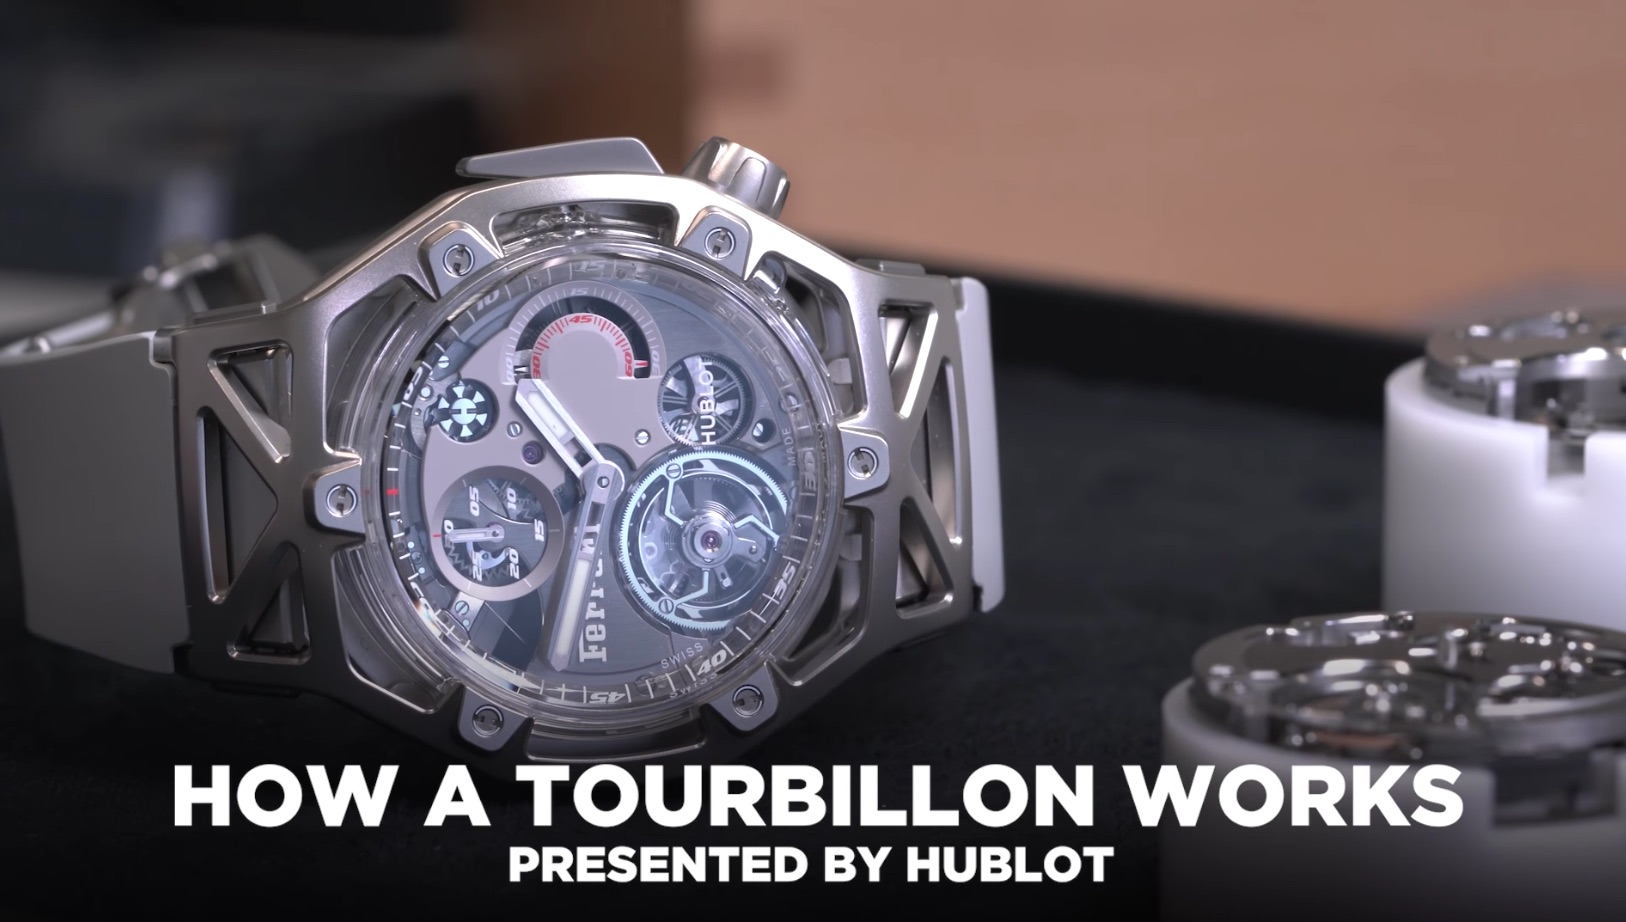 VIDEO: Pulling apart a Hublot tourbillon cage to see how it works